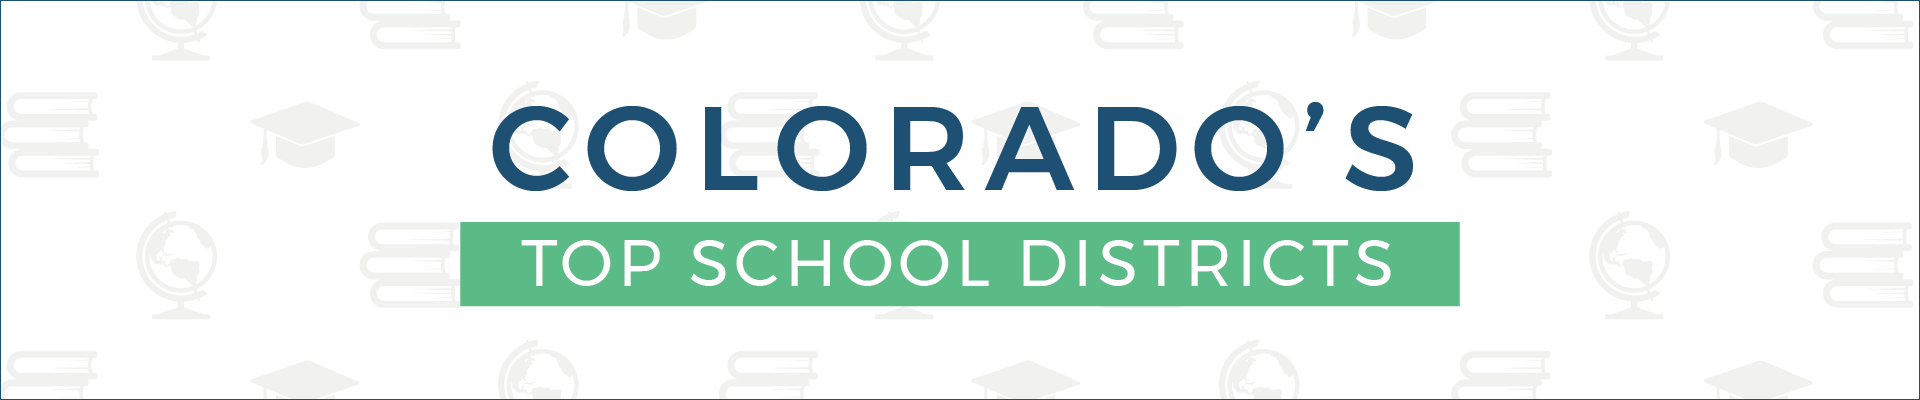 colorado_top_school_district_banner_2020